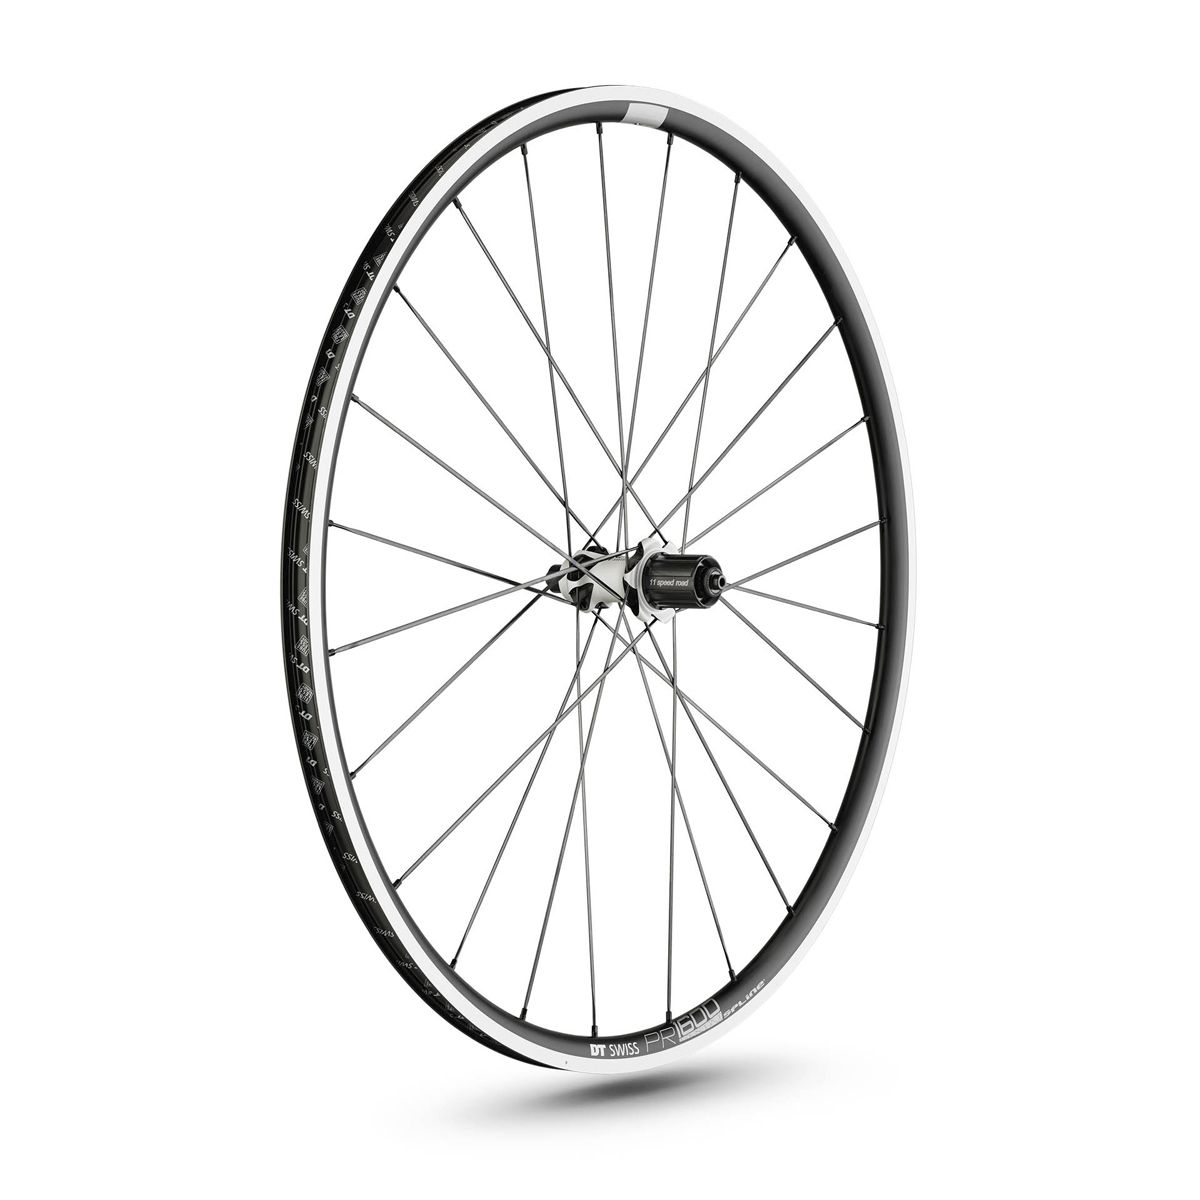 PR 1600 Spline 23 road rear wheel 28